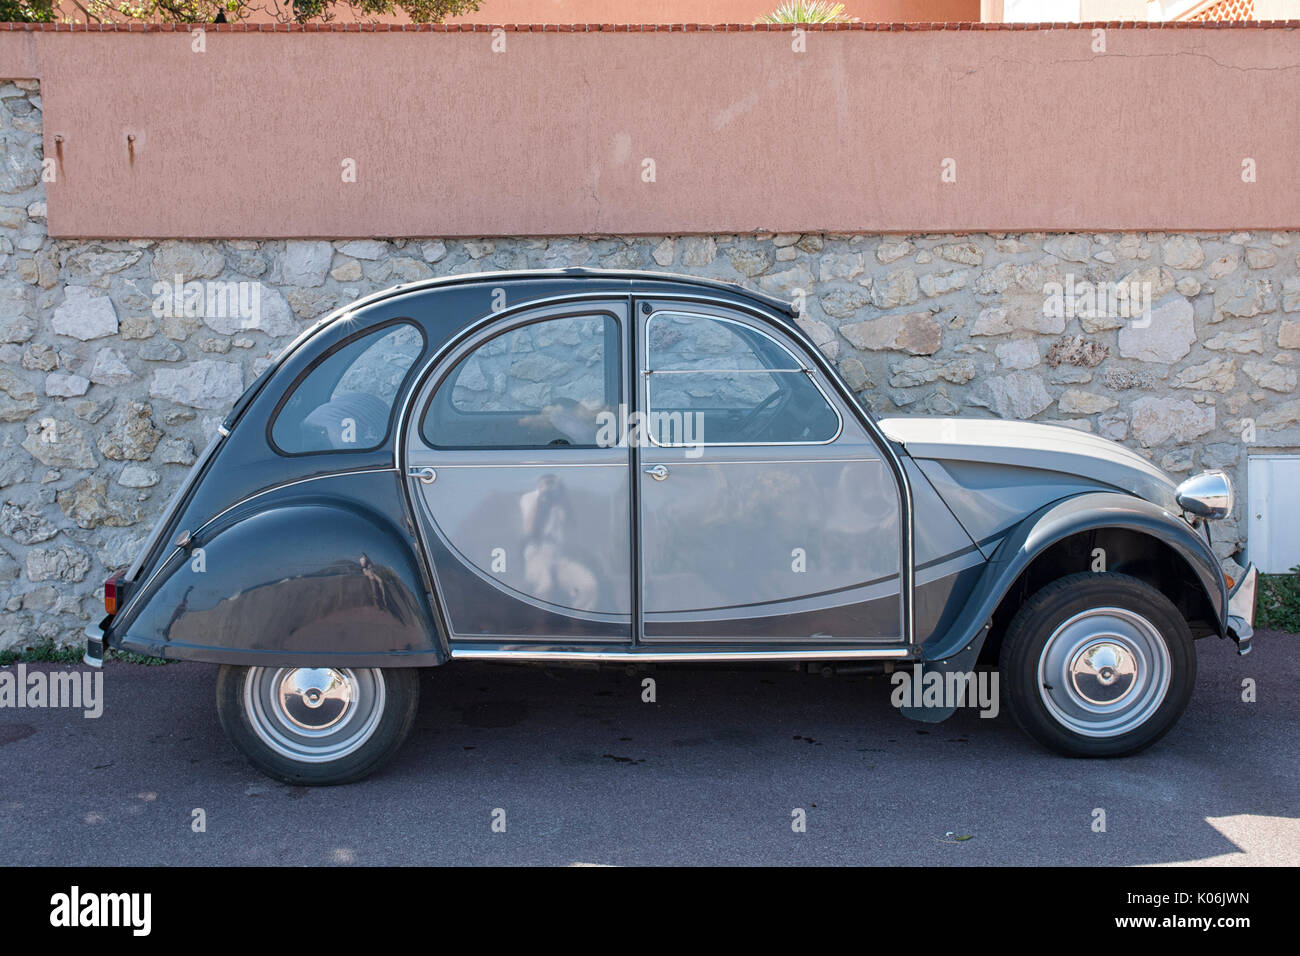 citroen 2cv charleston stock photos citroen 2cv charleston stock images alamy. Black Bedroom Furniture Sets. Home Design Ideas